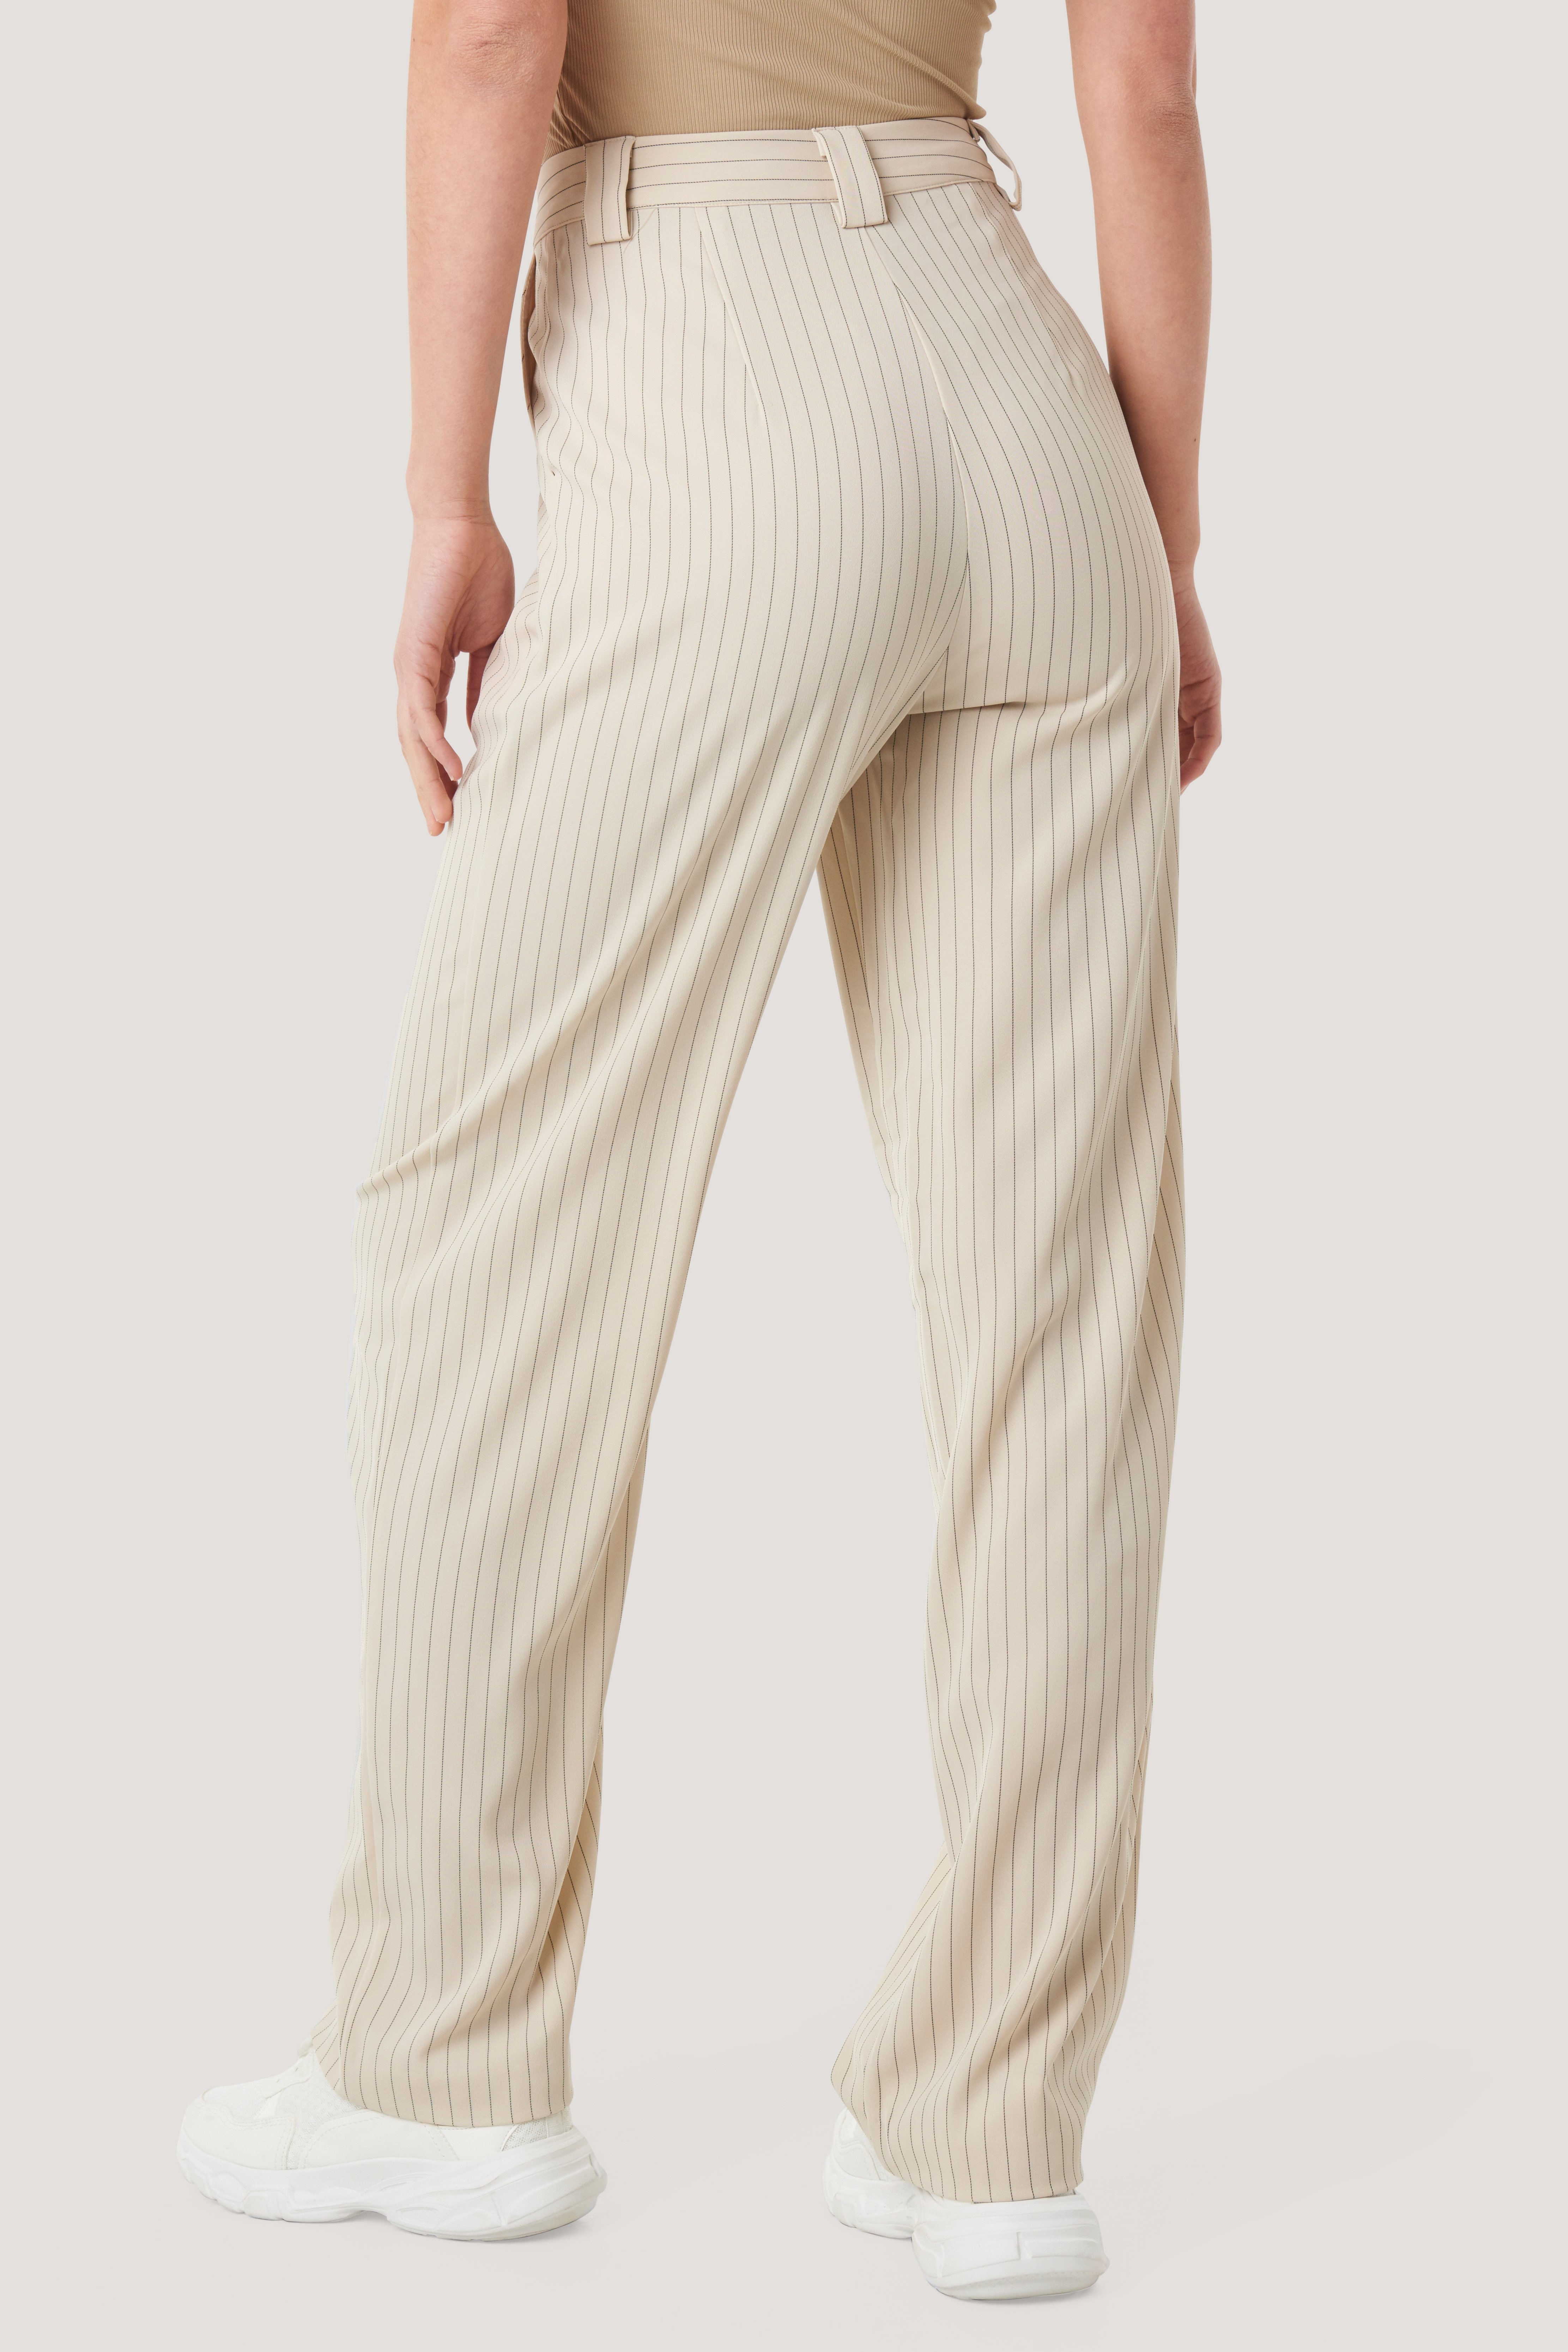 Beige Flared Striped Pants